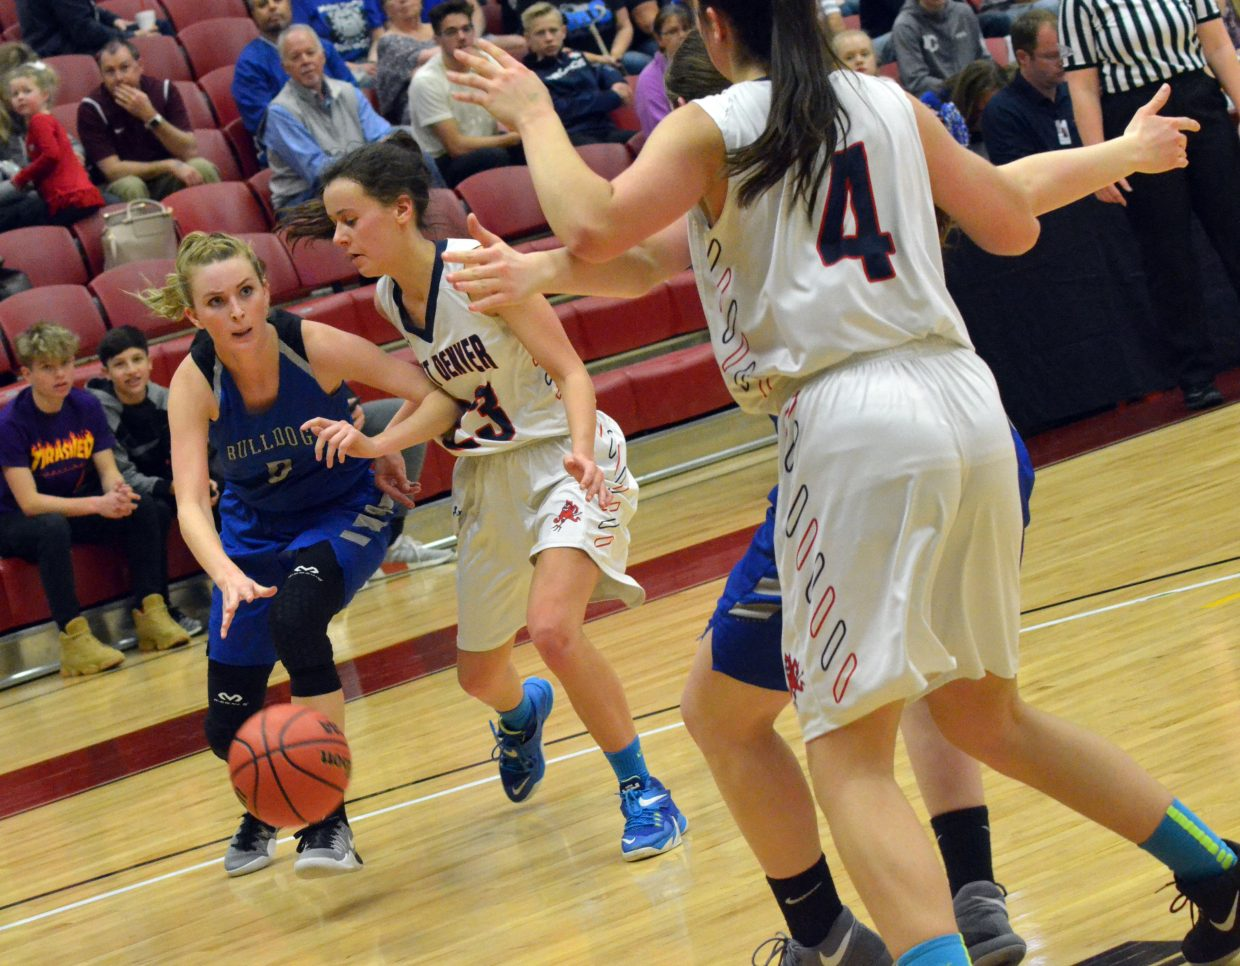 Moffat County High School's Kinlie Brennise fires off a bounce pass to teammate Tiffany Hildebrandt.